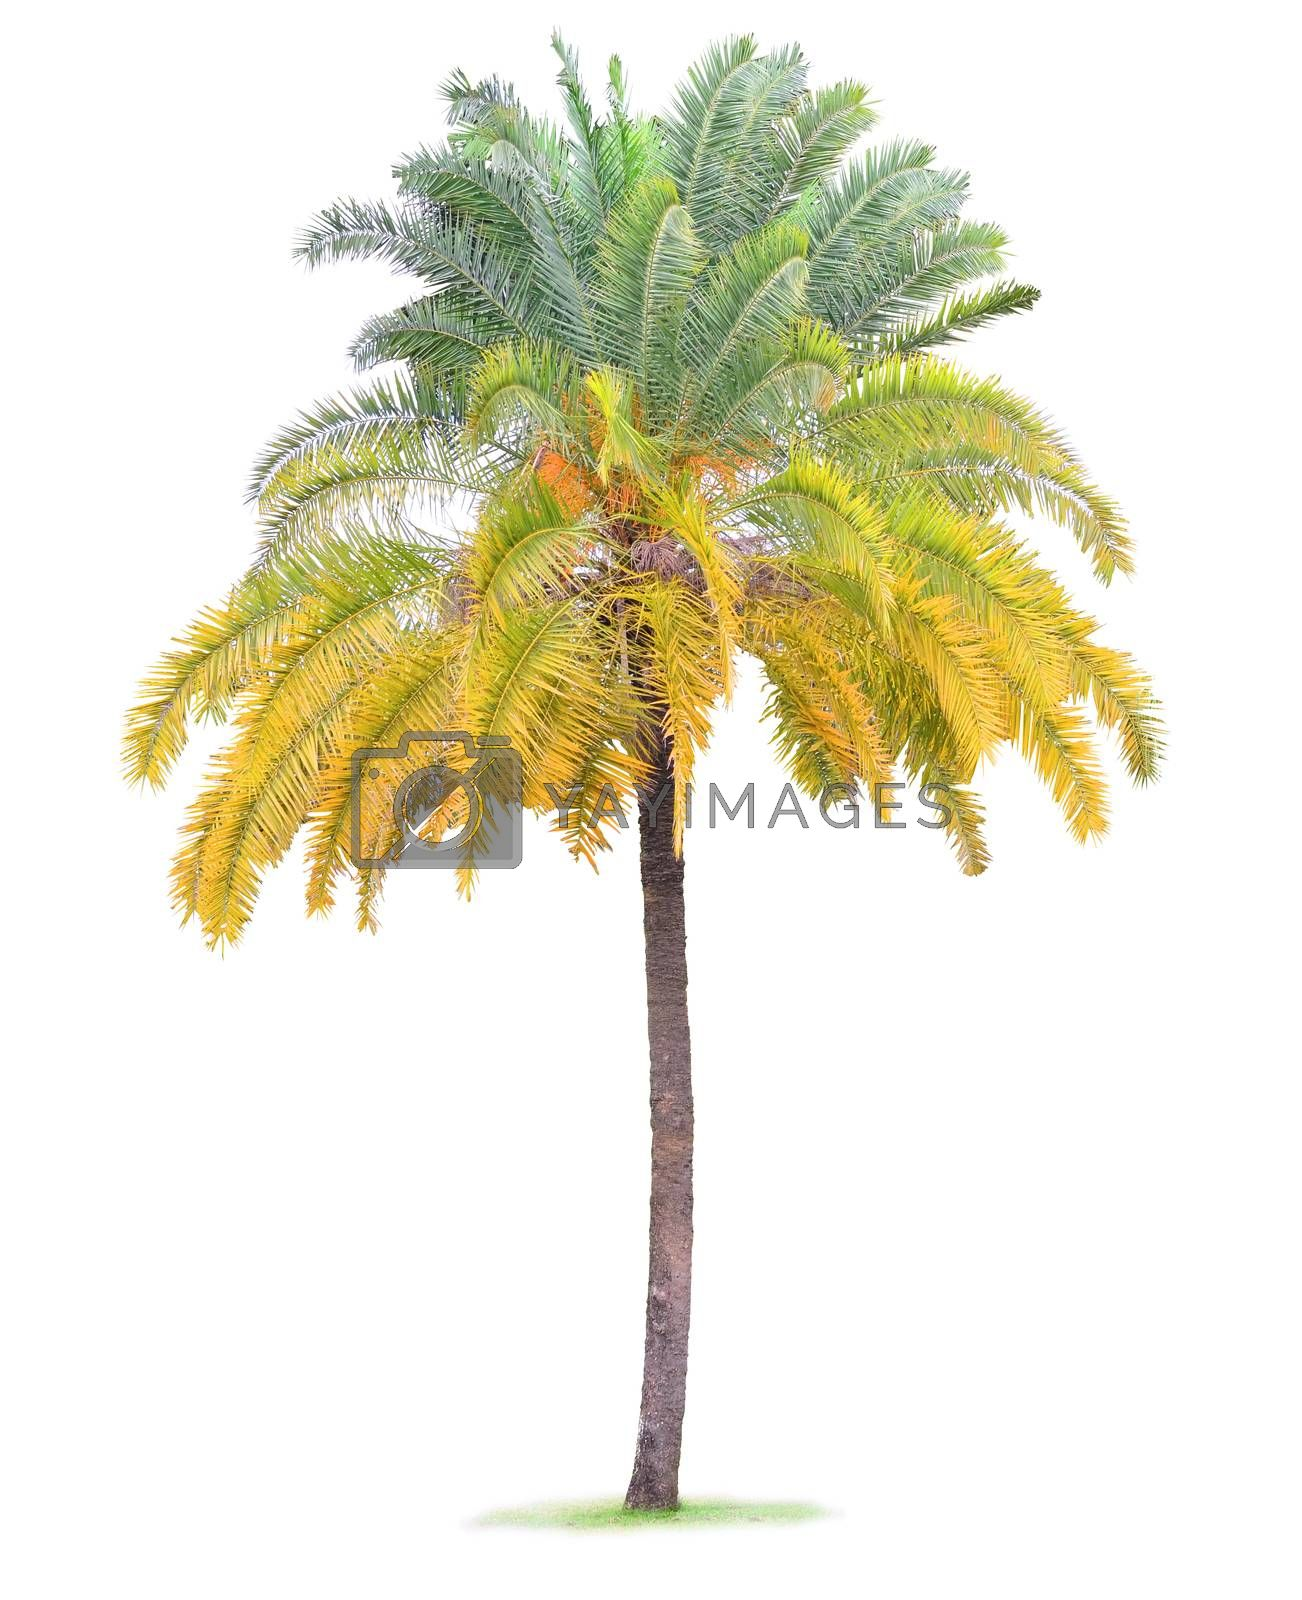 Coconut palm tree leaf isolated on white background